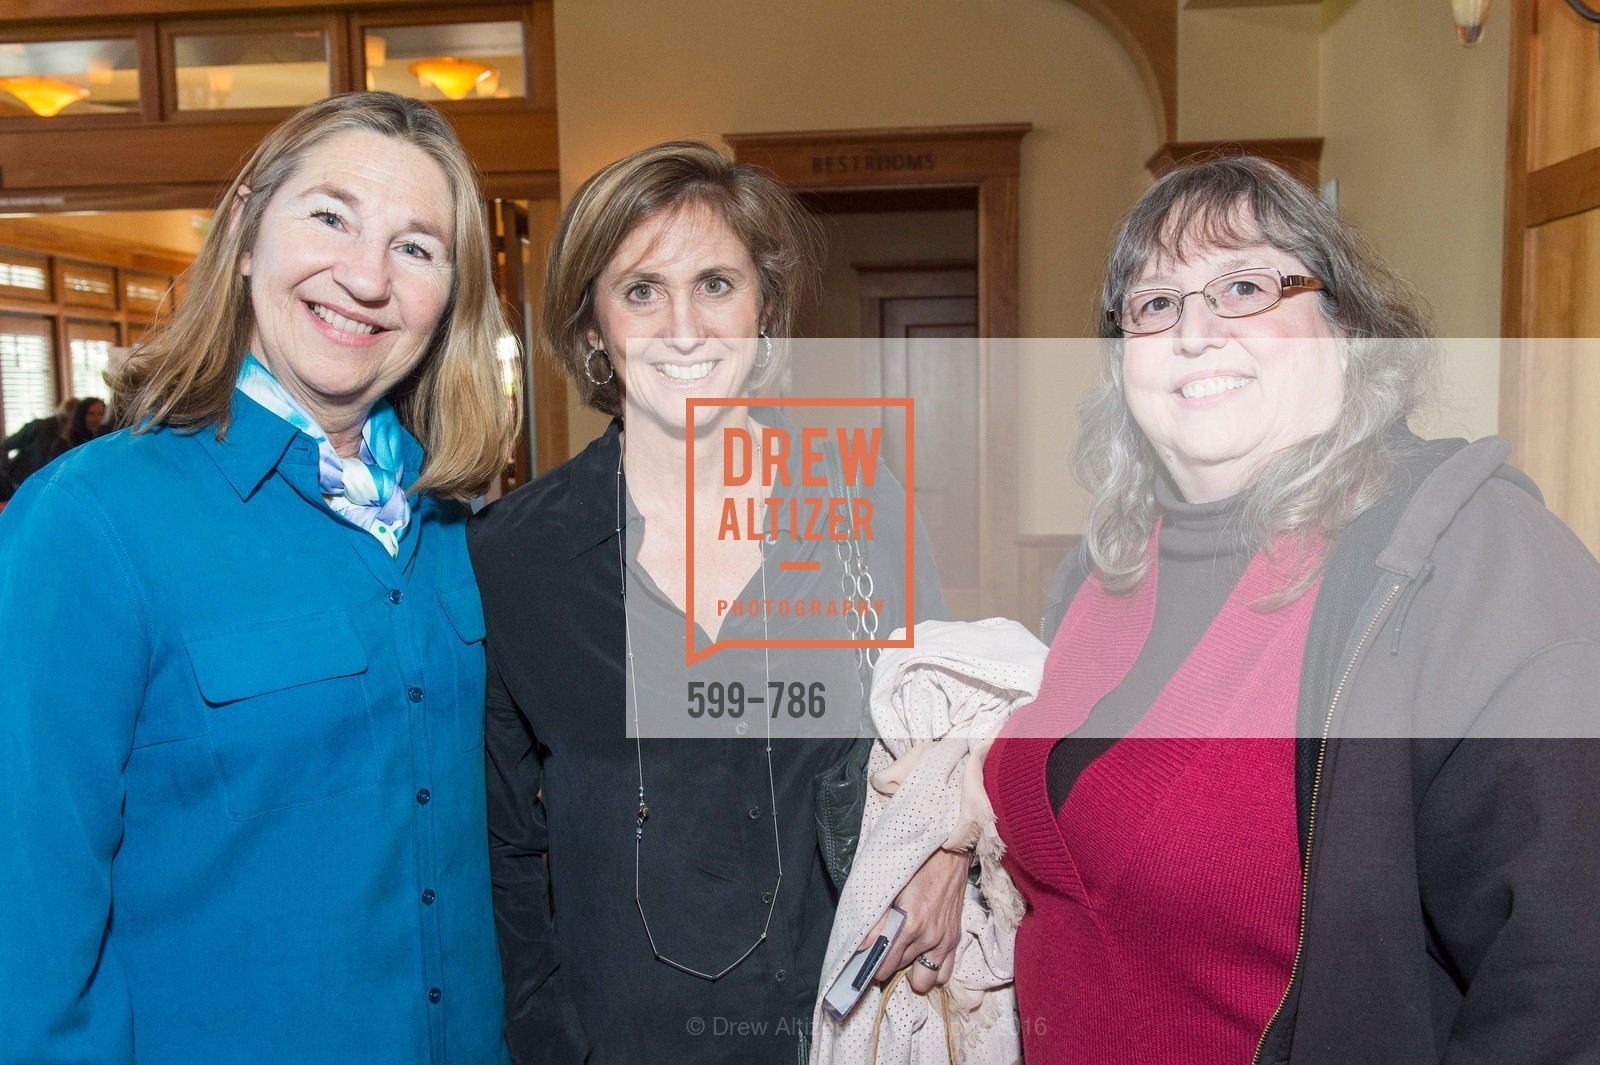 Yvonne Wolters, Sheri Sobrato Brisson, Sherri Sager, The Children's Health Council Breakfast, Sharon Height Golf and Country Club. 900 Sand Hill Rd, February 2nd, 2016,Drew Altizer, Drew Altizer Photography, full-service agency, private events, San Francisco photographer, photographer california